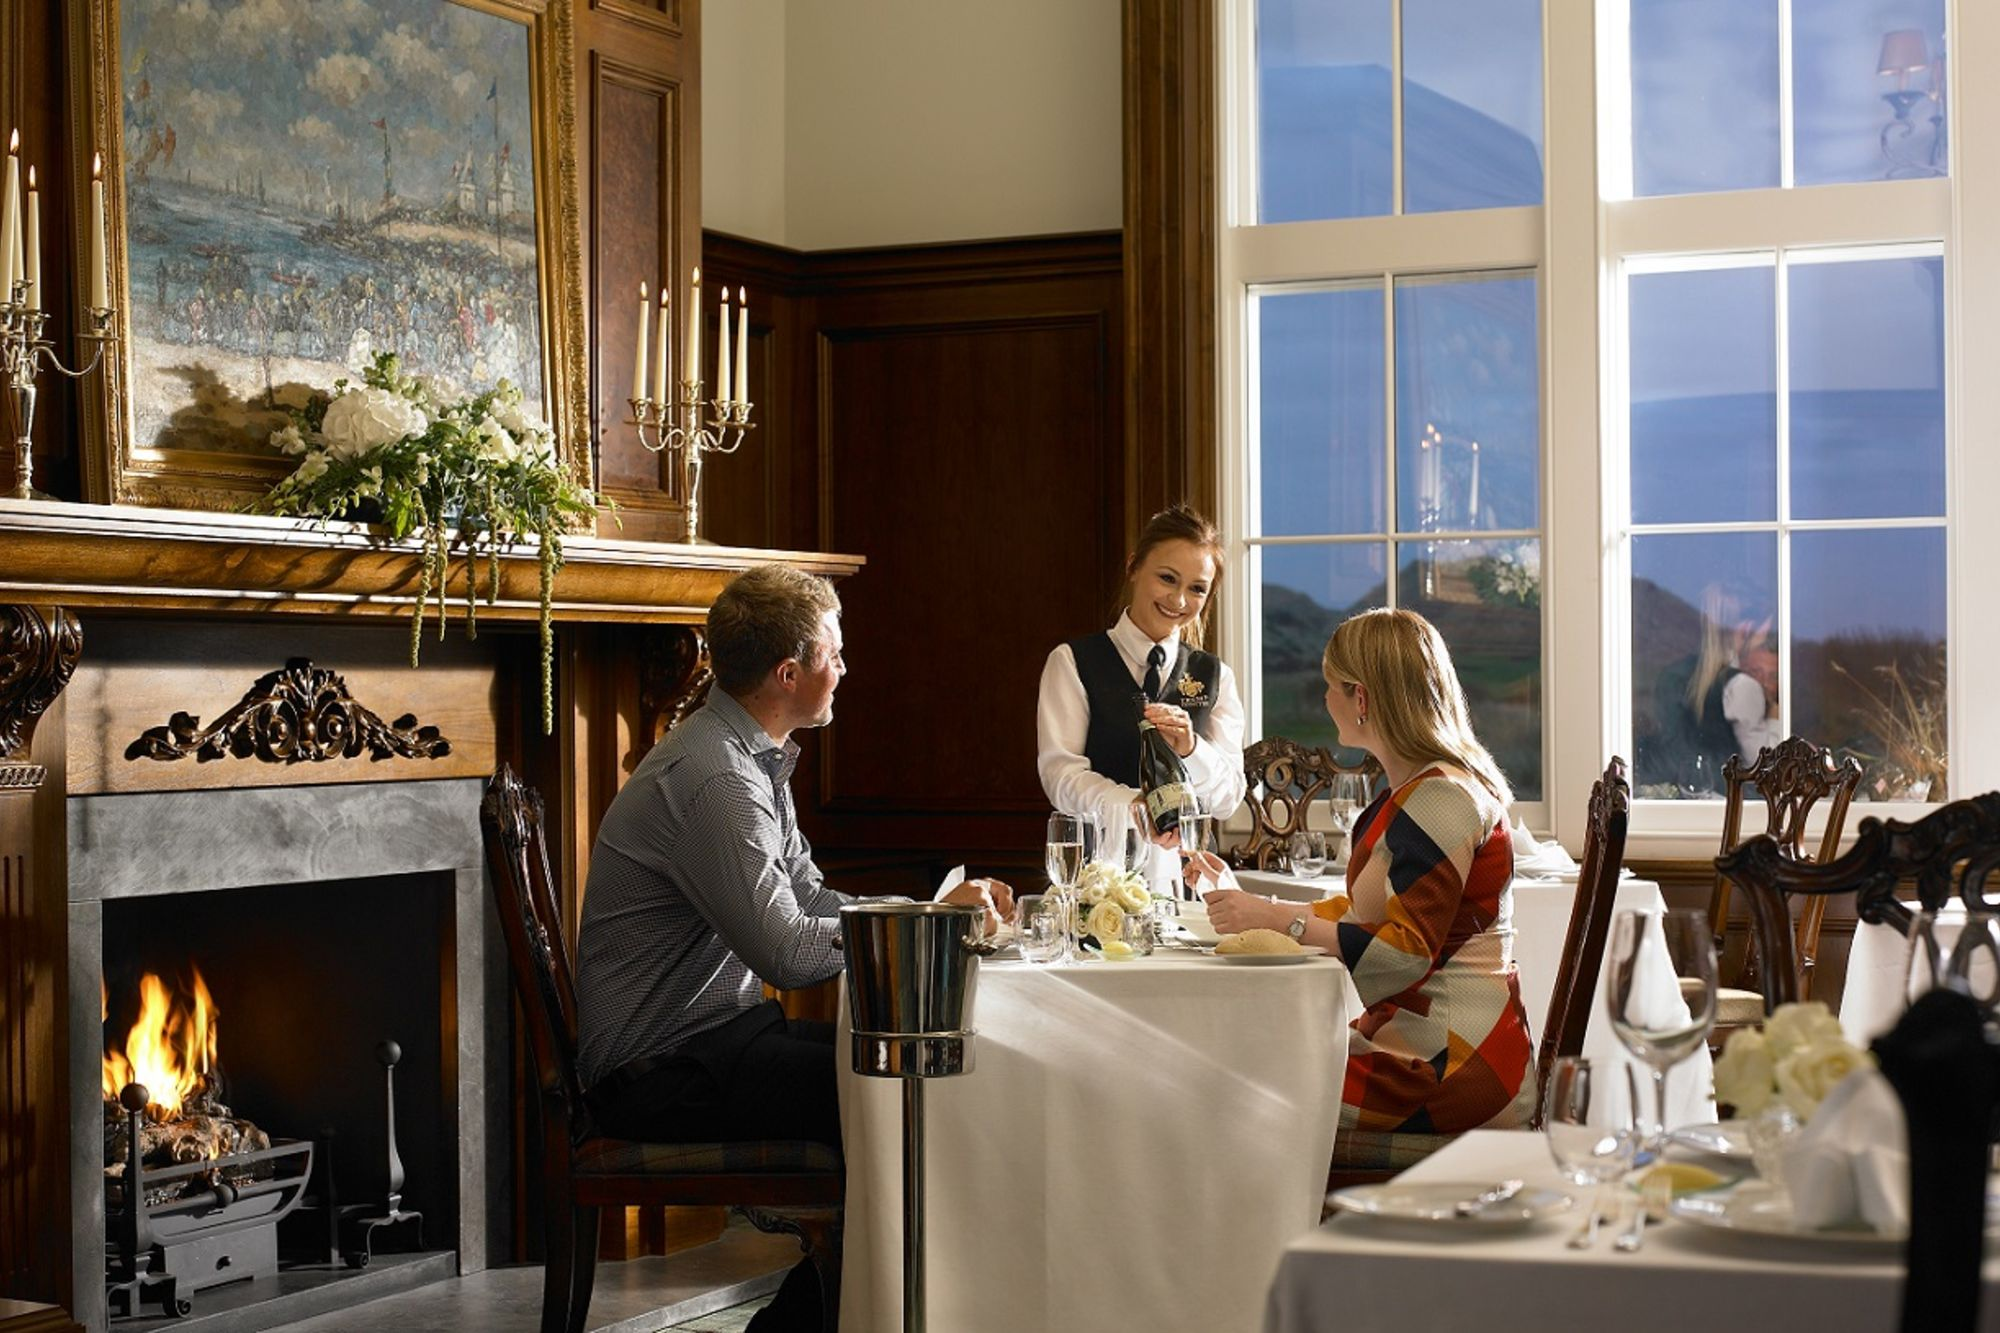 MacLeod House dining room with server presenting wine